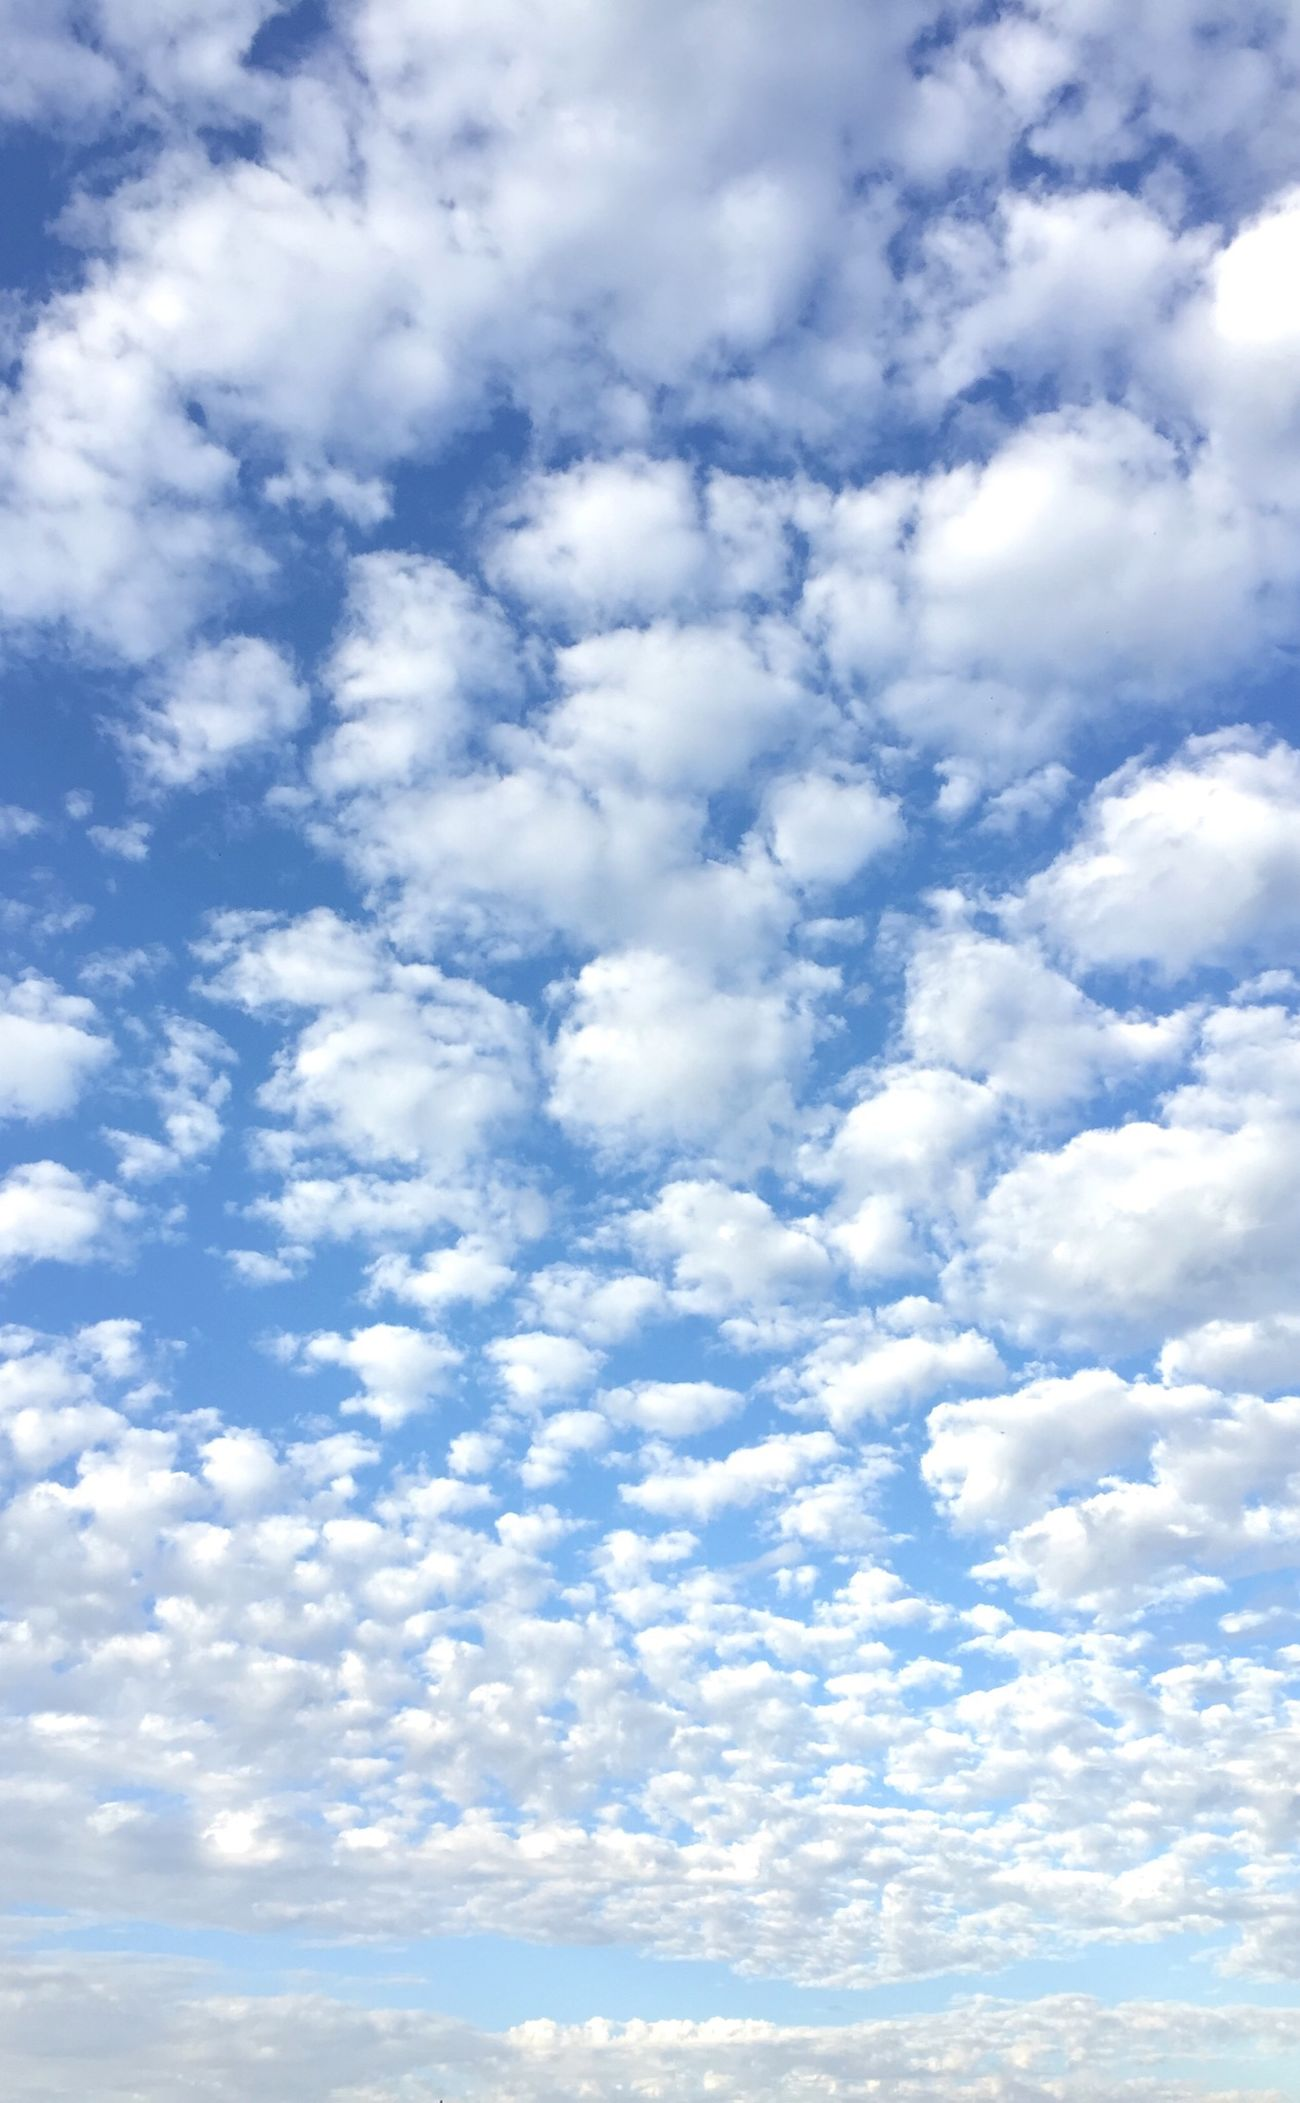 Sky Nature Sky_collection Japan Autumn Blue White Sheep Abstract Outdoors